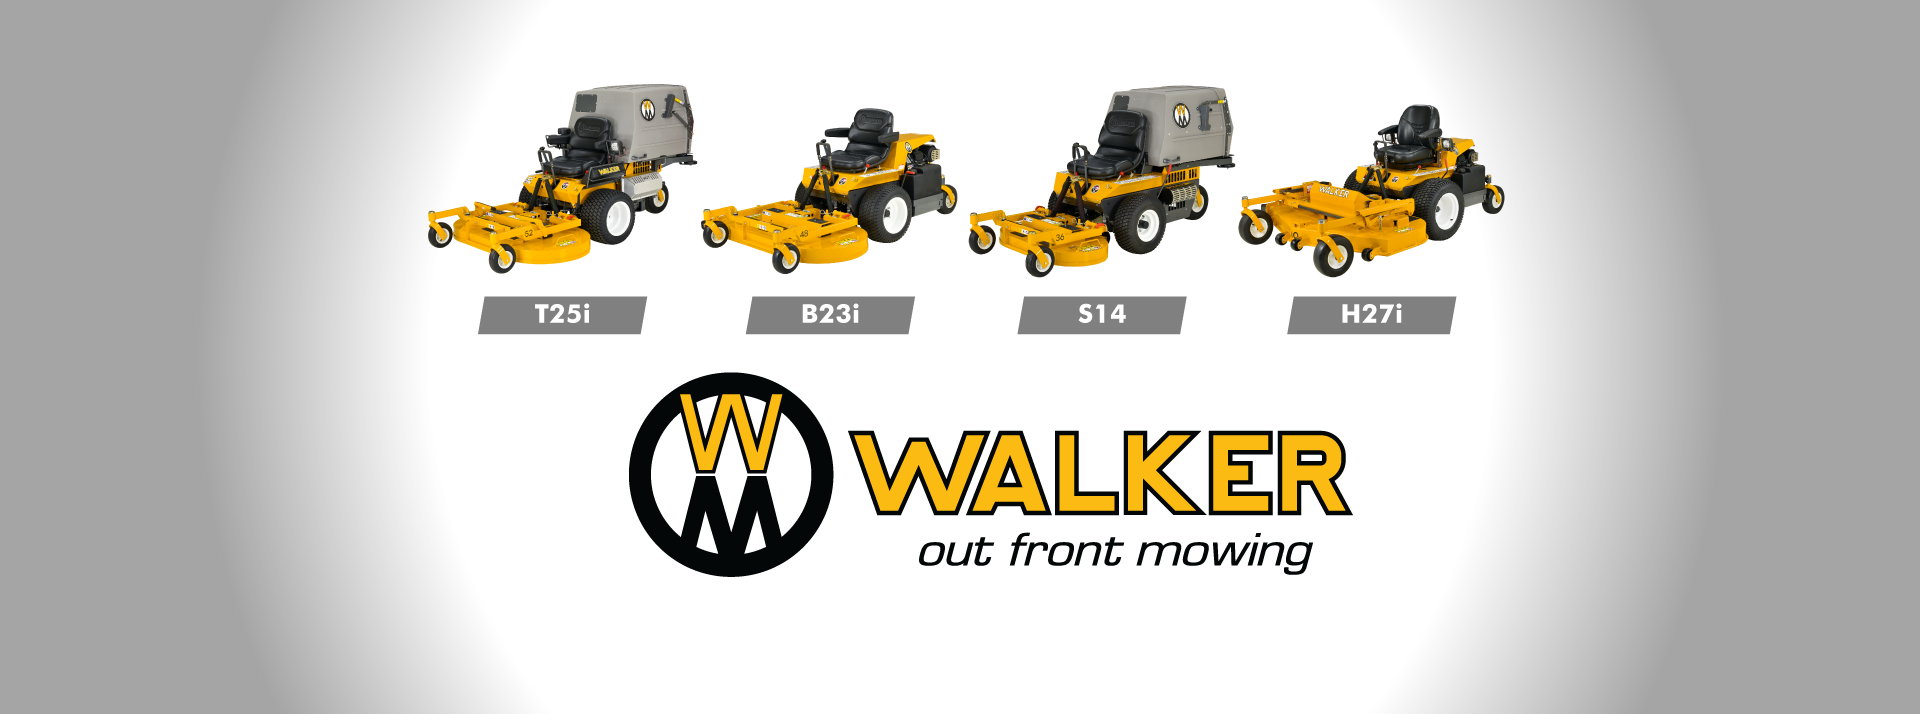 Walker Mower - Precision Work INC